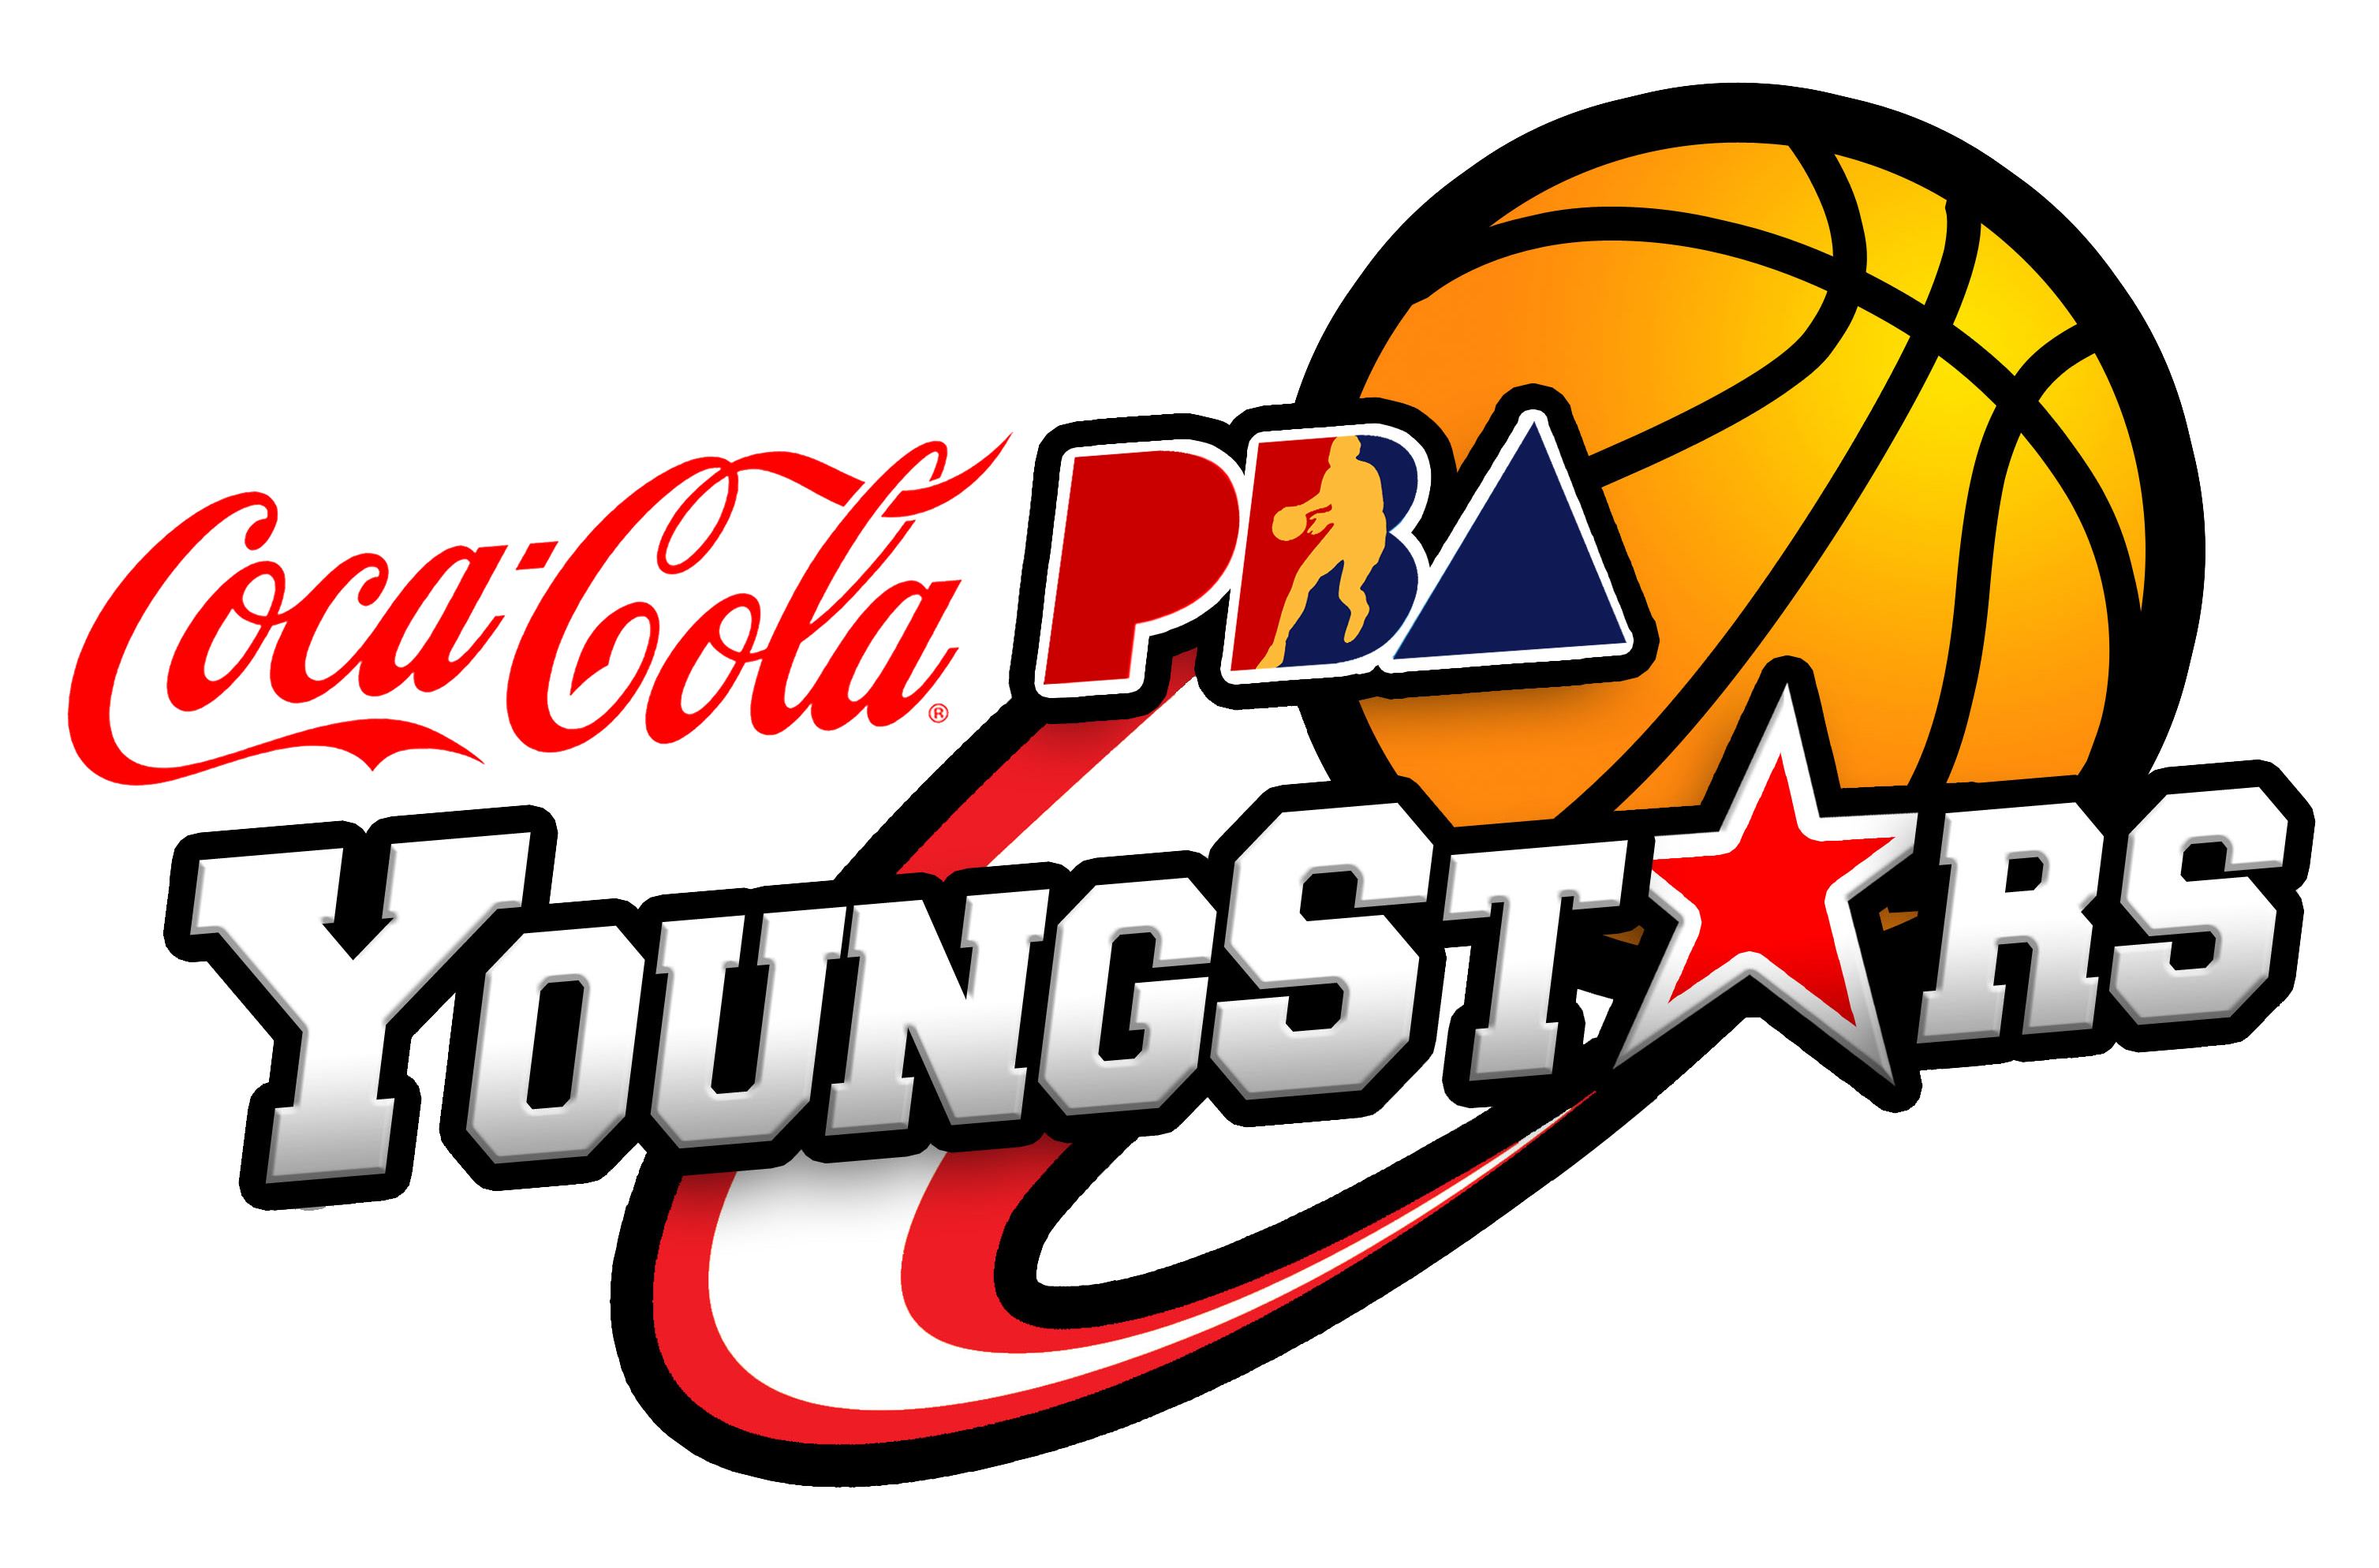 Coca-Cola PBA Youngstars Logo